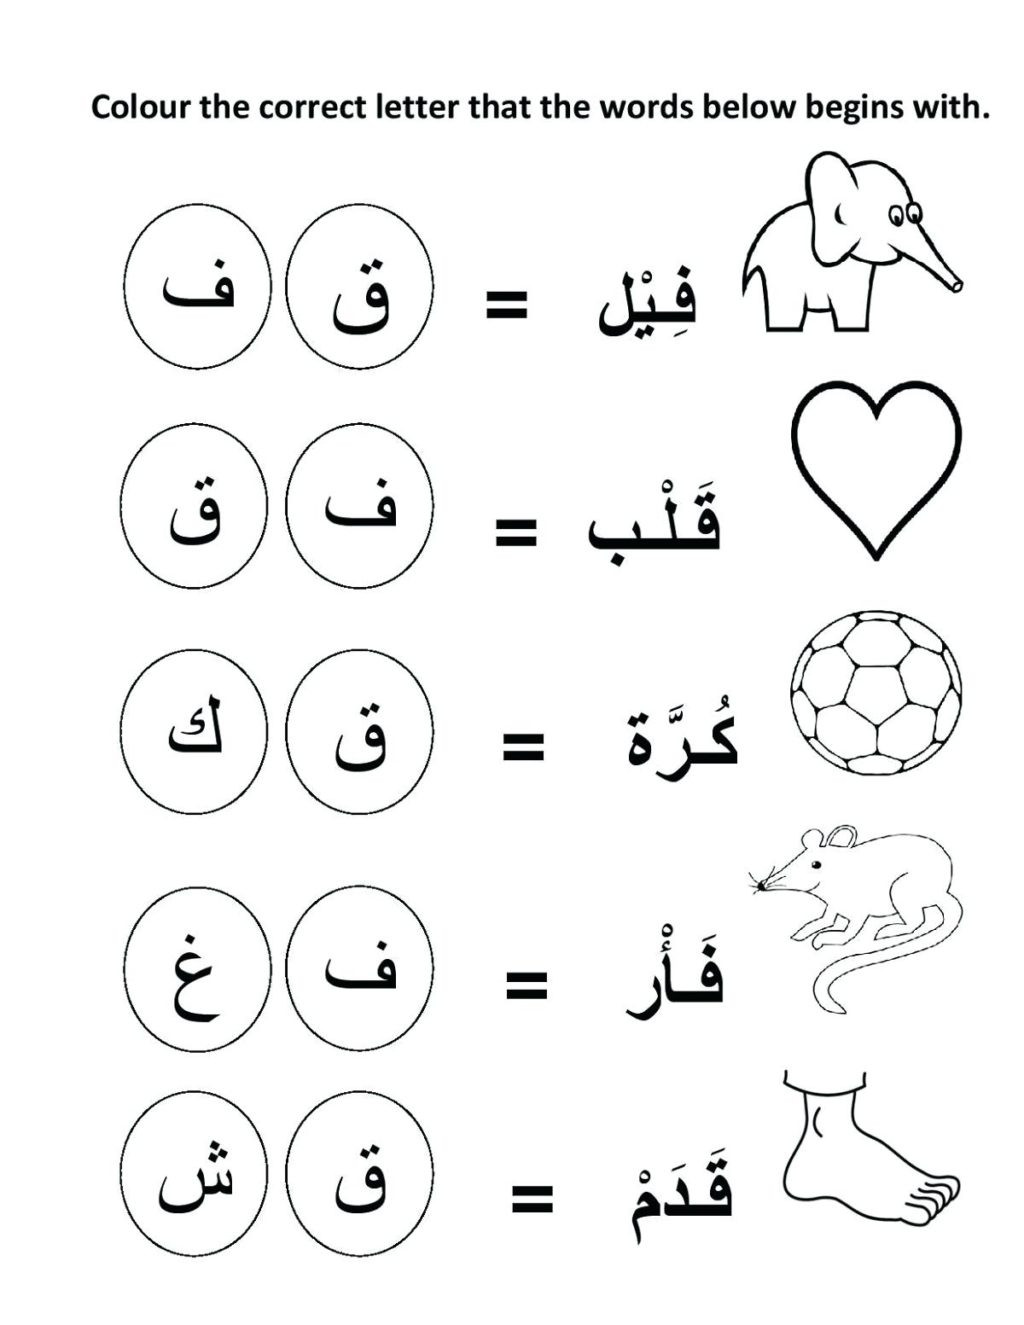 Arabic Alphabet Worksheets Printable Printable Arabic Alphabet Coloring Pages for Preschoolers